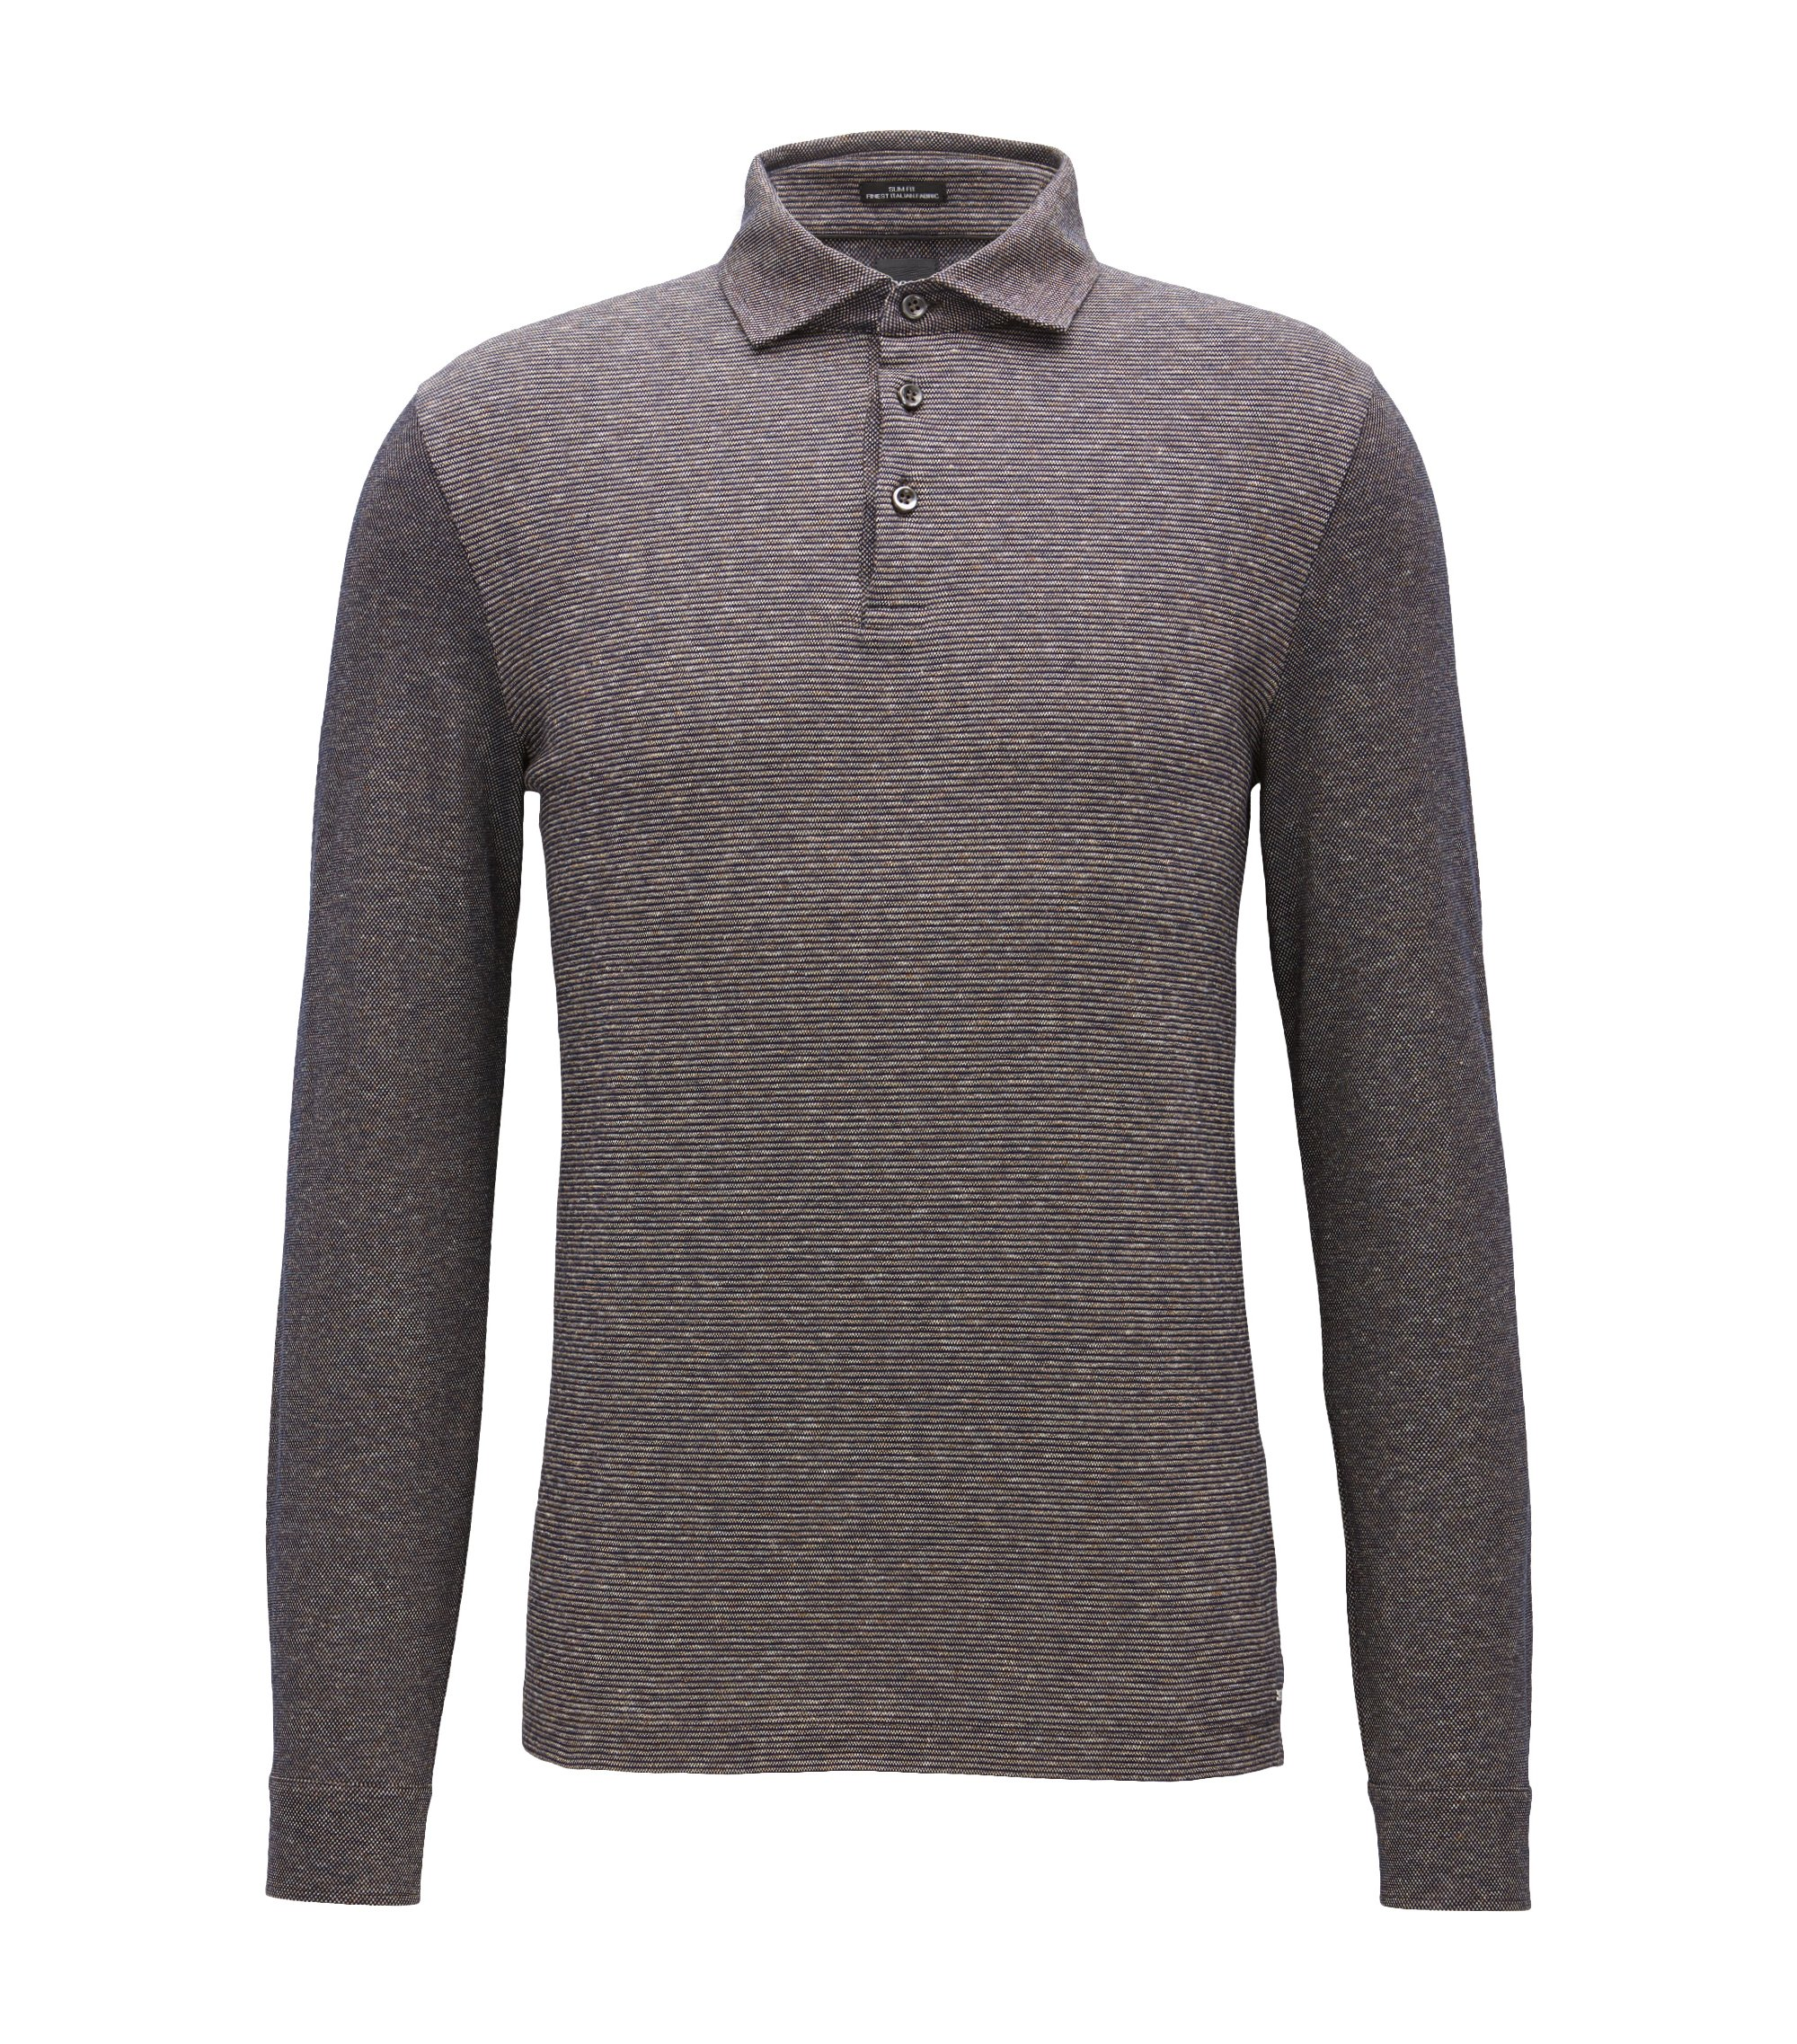 Italian Cotton Polo Shirt, Slim Fit | T-Morrison, Brown